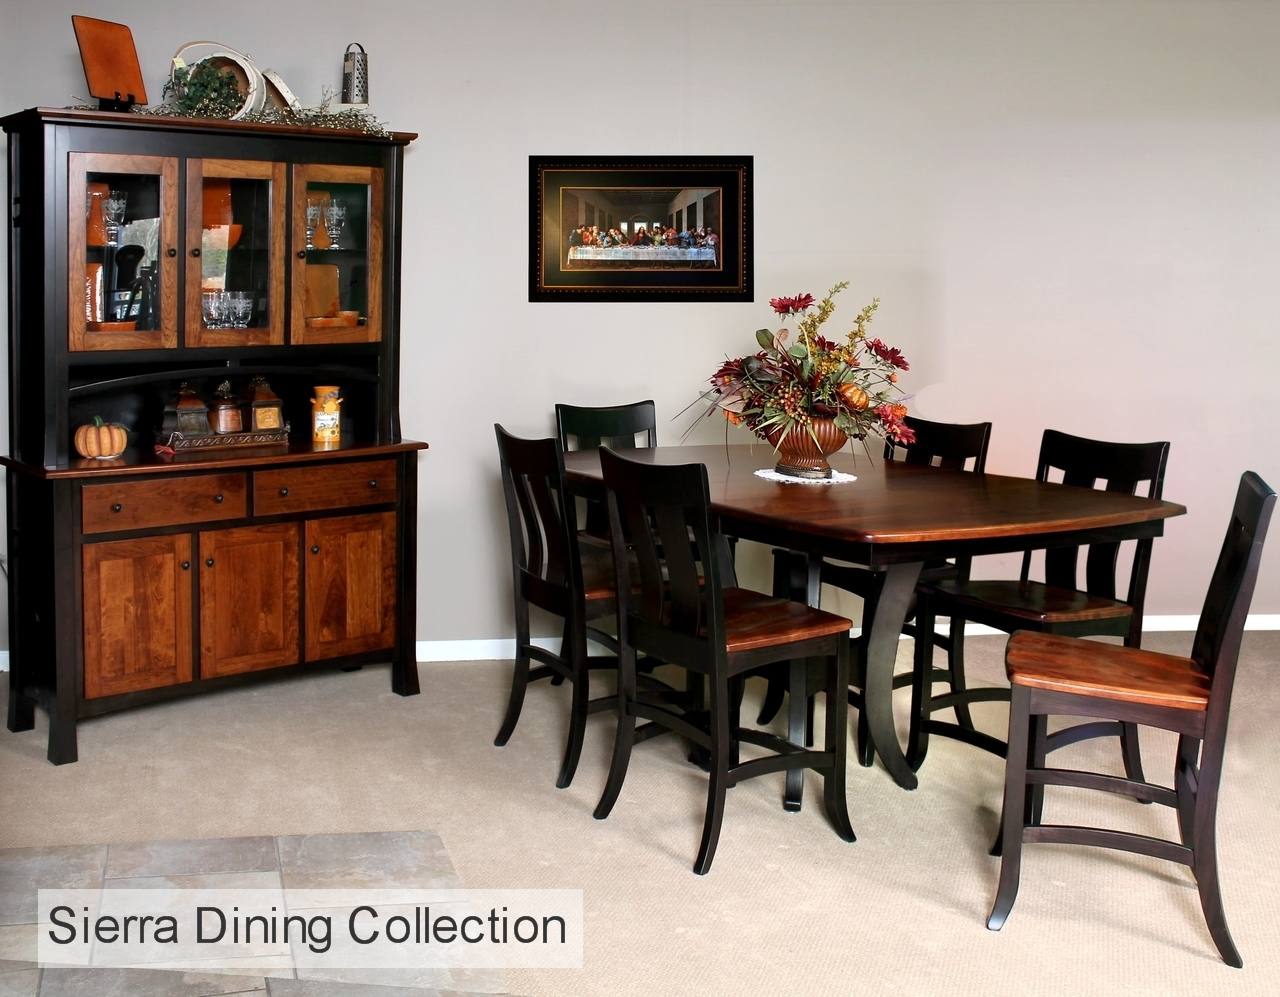 sierra-dining-collection-banner.jpg